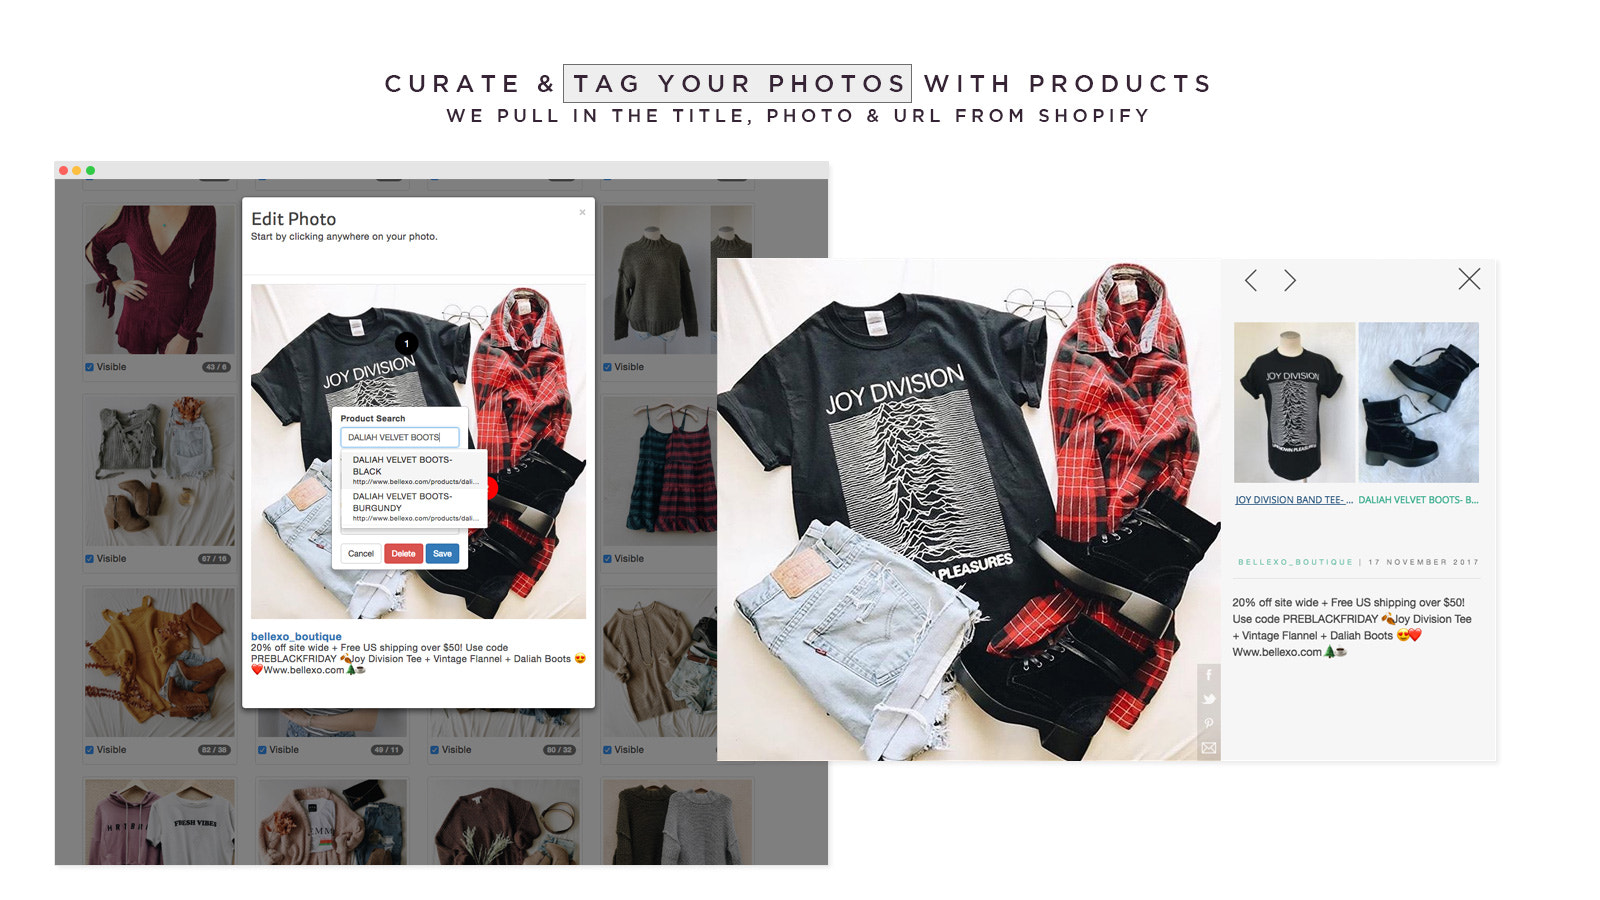 Curate & Tag Photos With Products - It's Easy